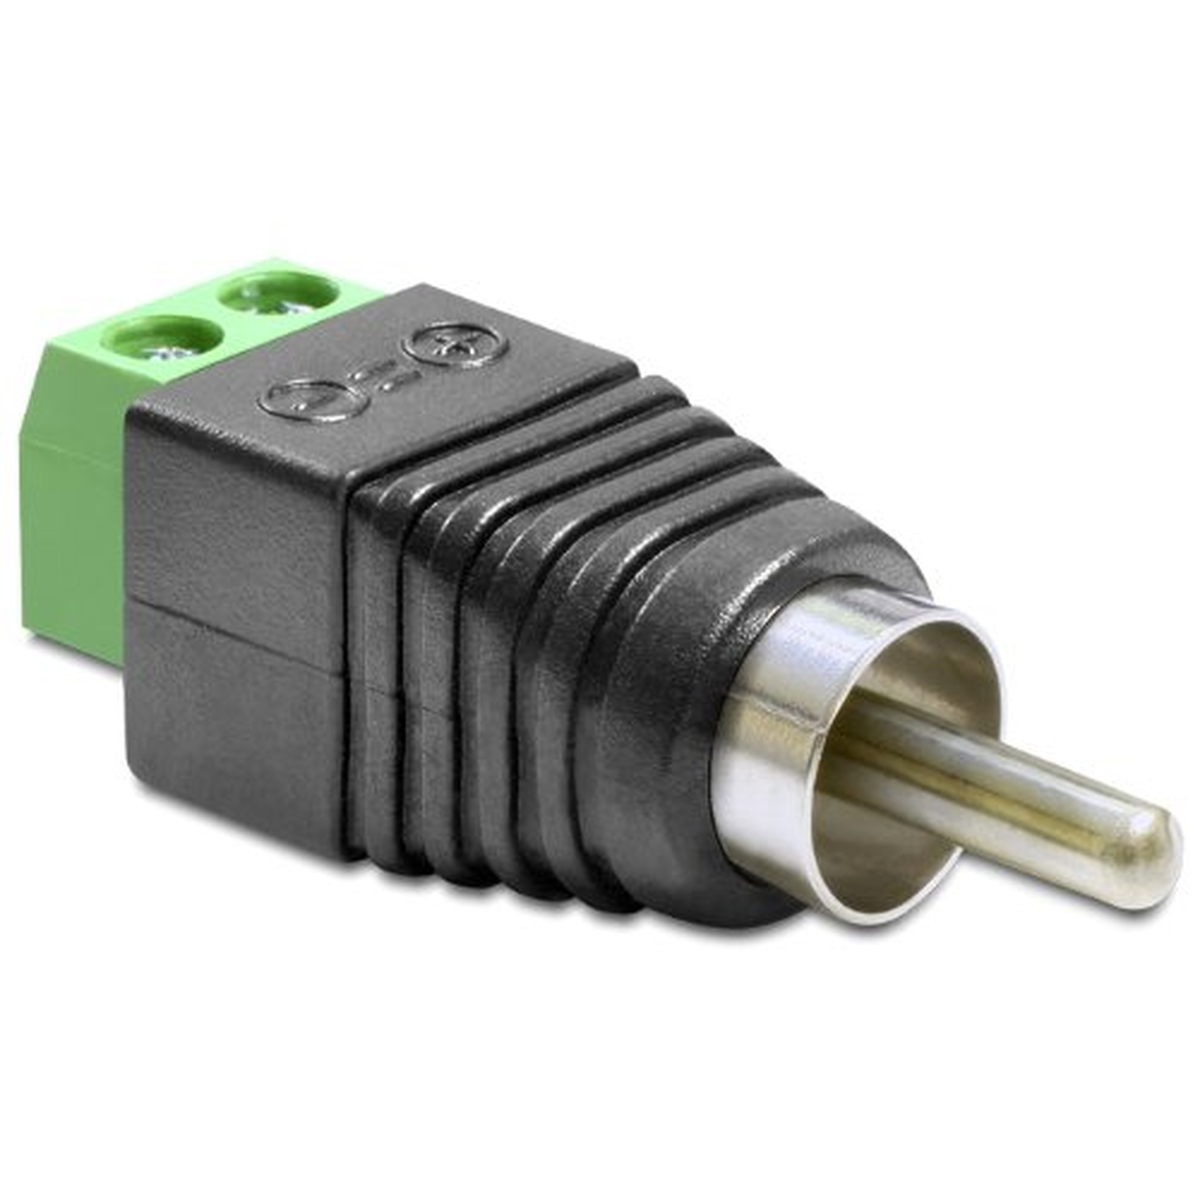 DeLOCK Adapter Cinch Stecker > Terminalblock 2 Pin